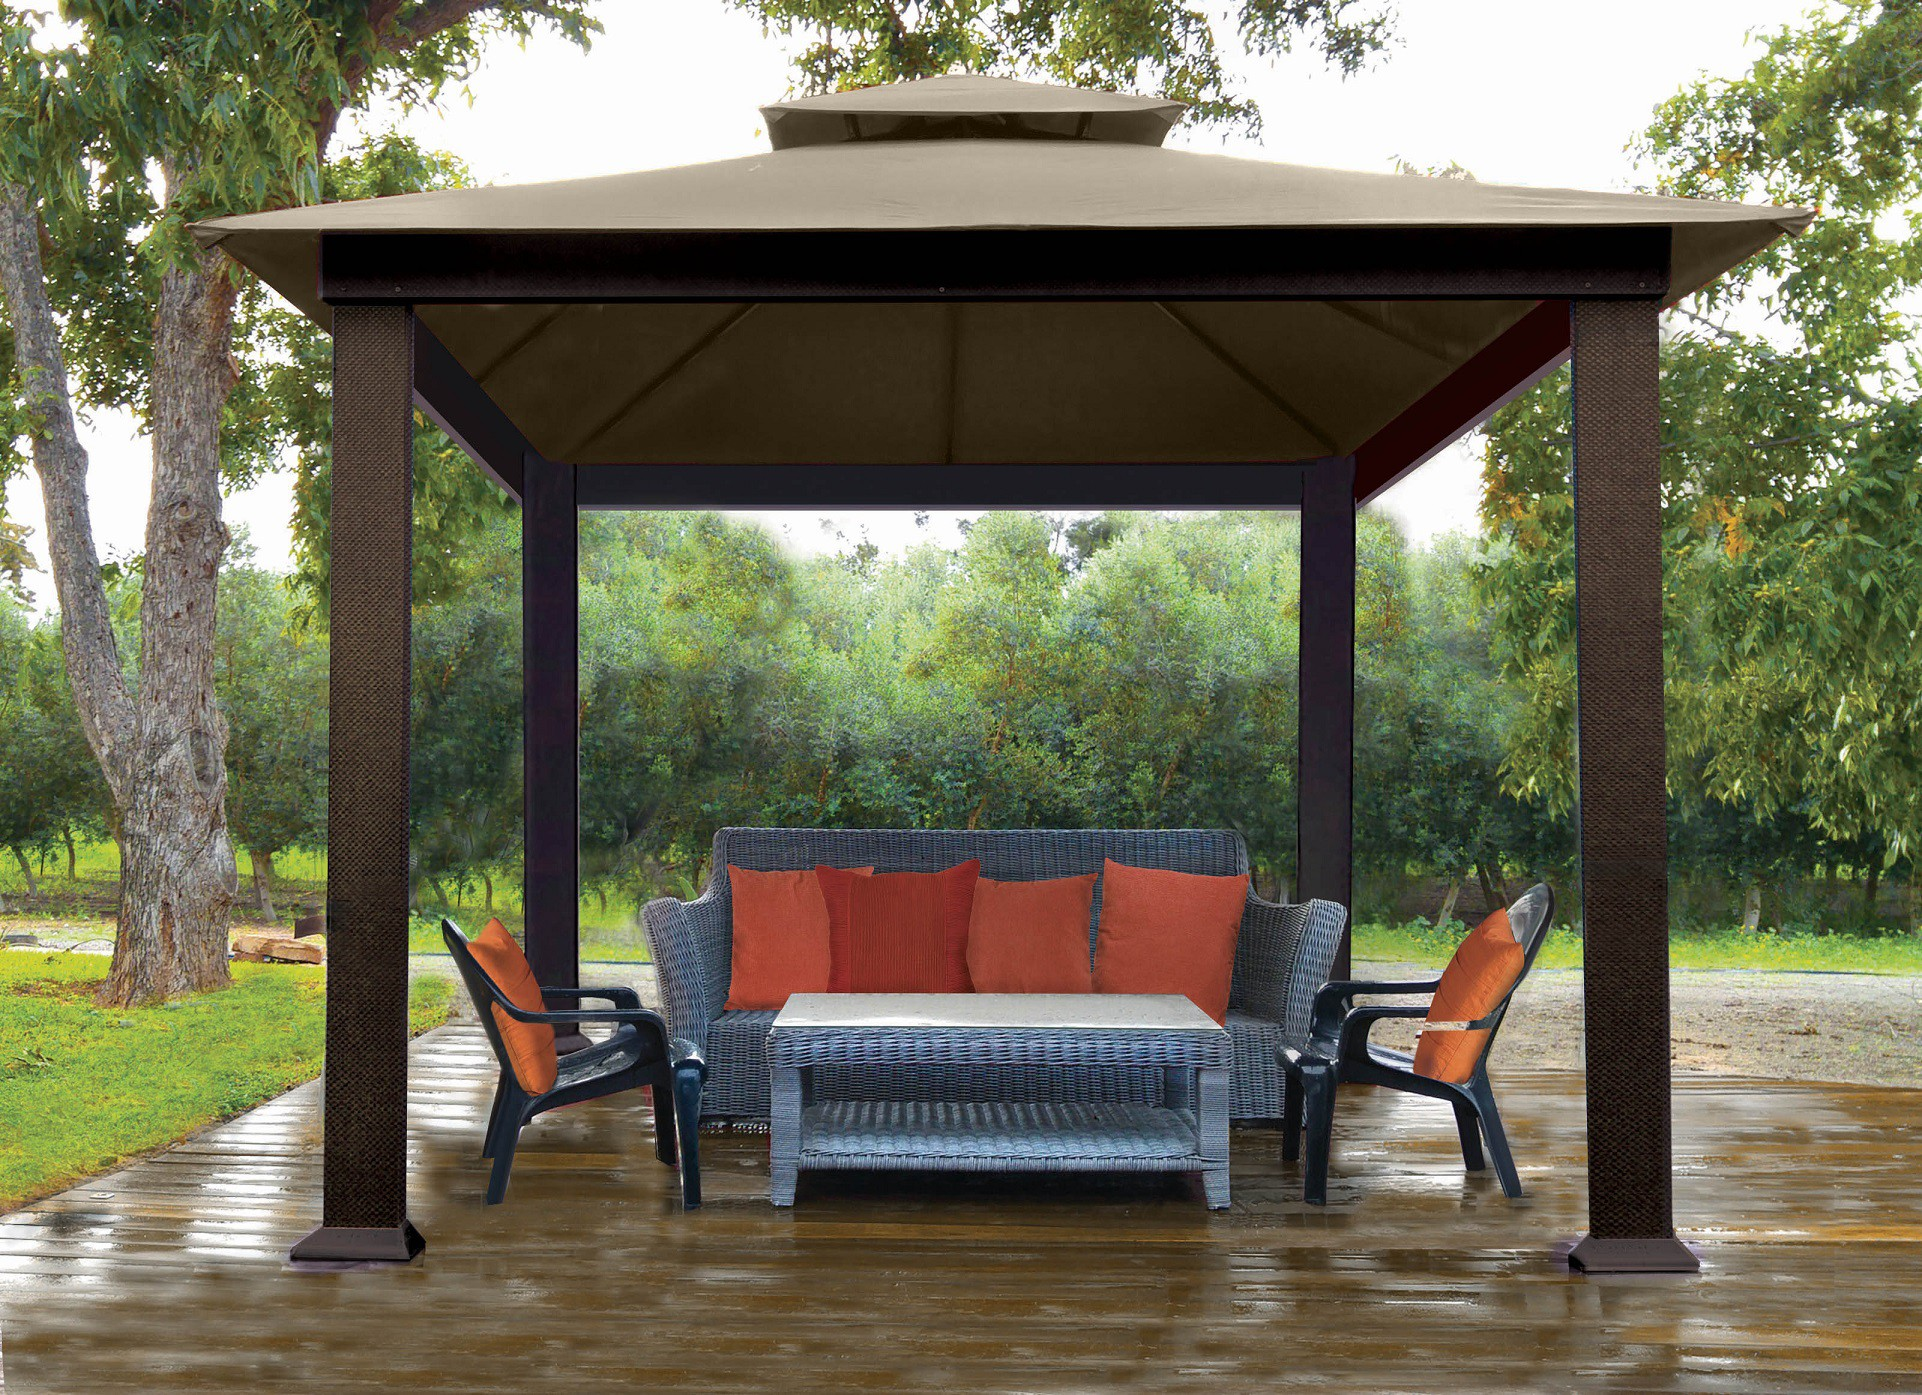 STC 10ft X 10ft Gazebo with Sunbrella Canopy